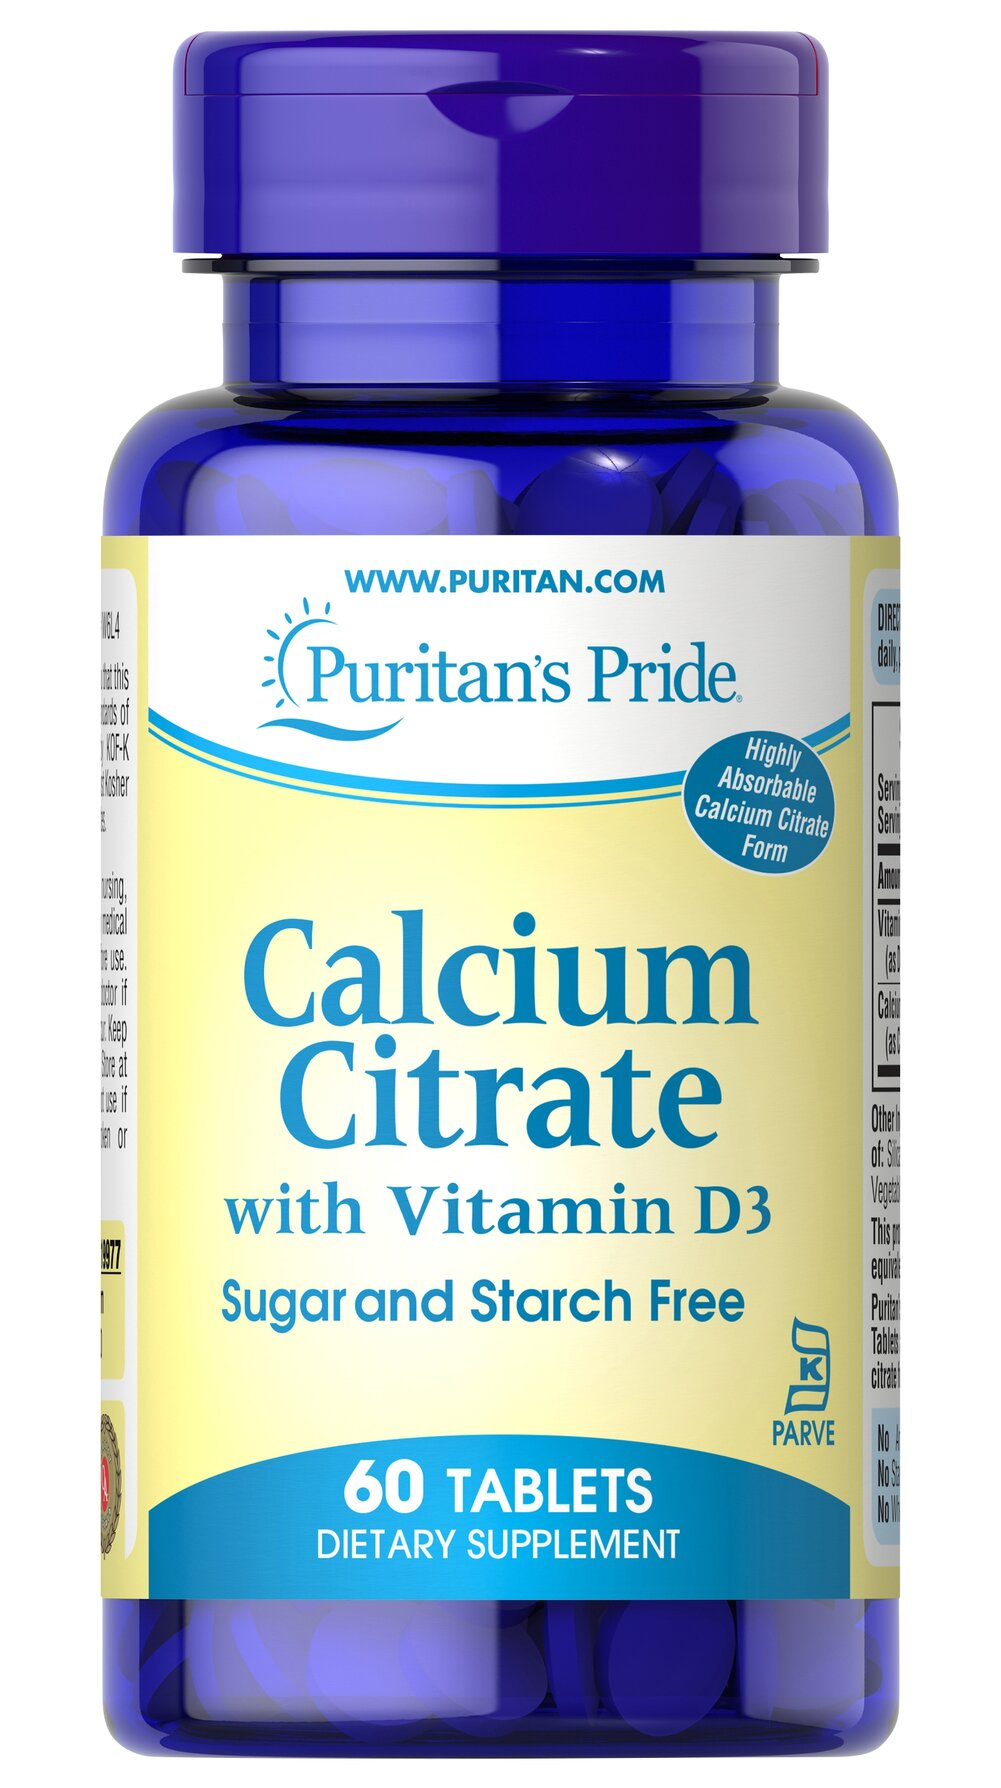 Calcium Citrate with Vitamin D Kosher <p>A Kosher/Vegetarian formulation of Calcium Citrate with Vitamin D – a potent combination for bone health and more!**</p><p>Made from Calcium Citrate – a highly absorbable form of this essential mineral</p><p>Calcium and Vitamin D work together to support bone and teeth health**</p><p>Promotes immune system health**</p><p>Supports breast, colon and pancreas health**</p><p>Prepared under KOF-